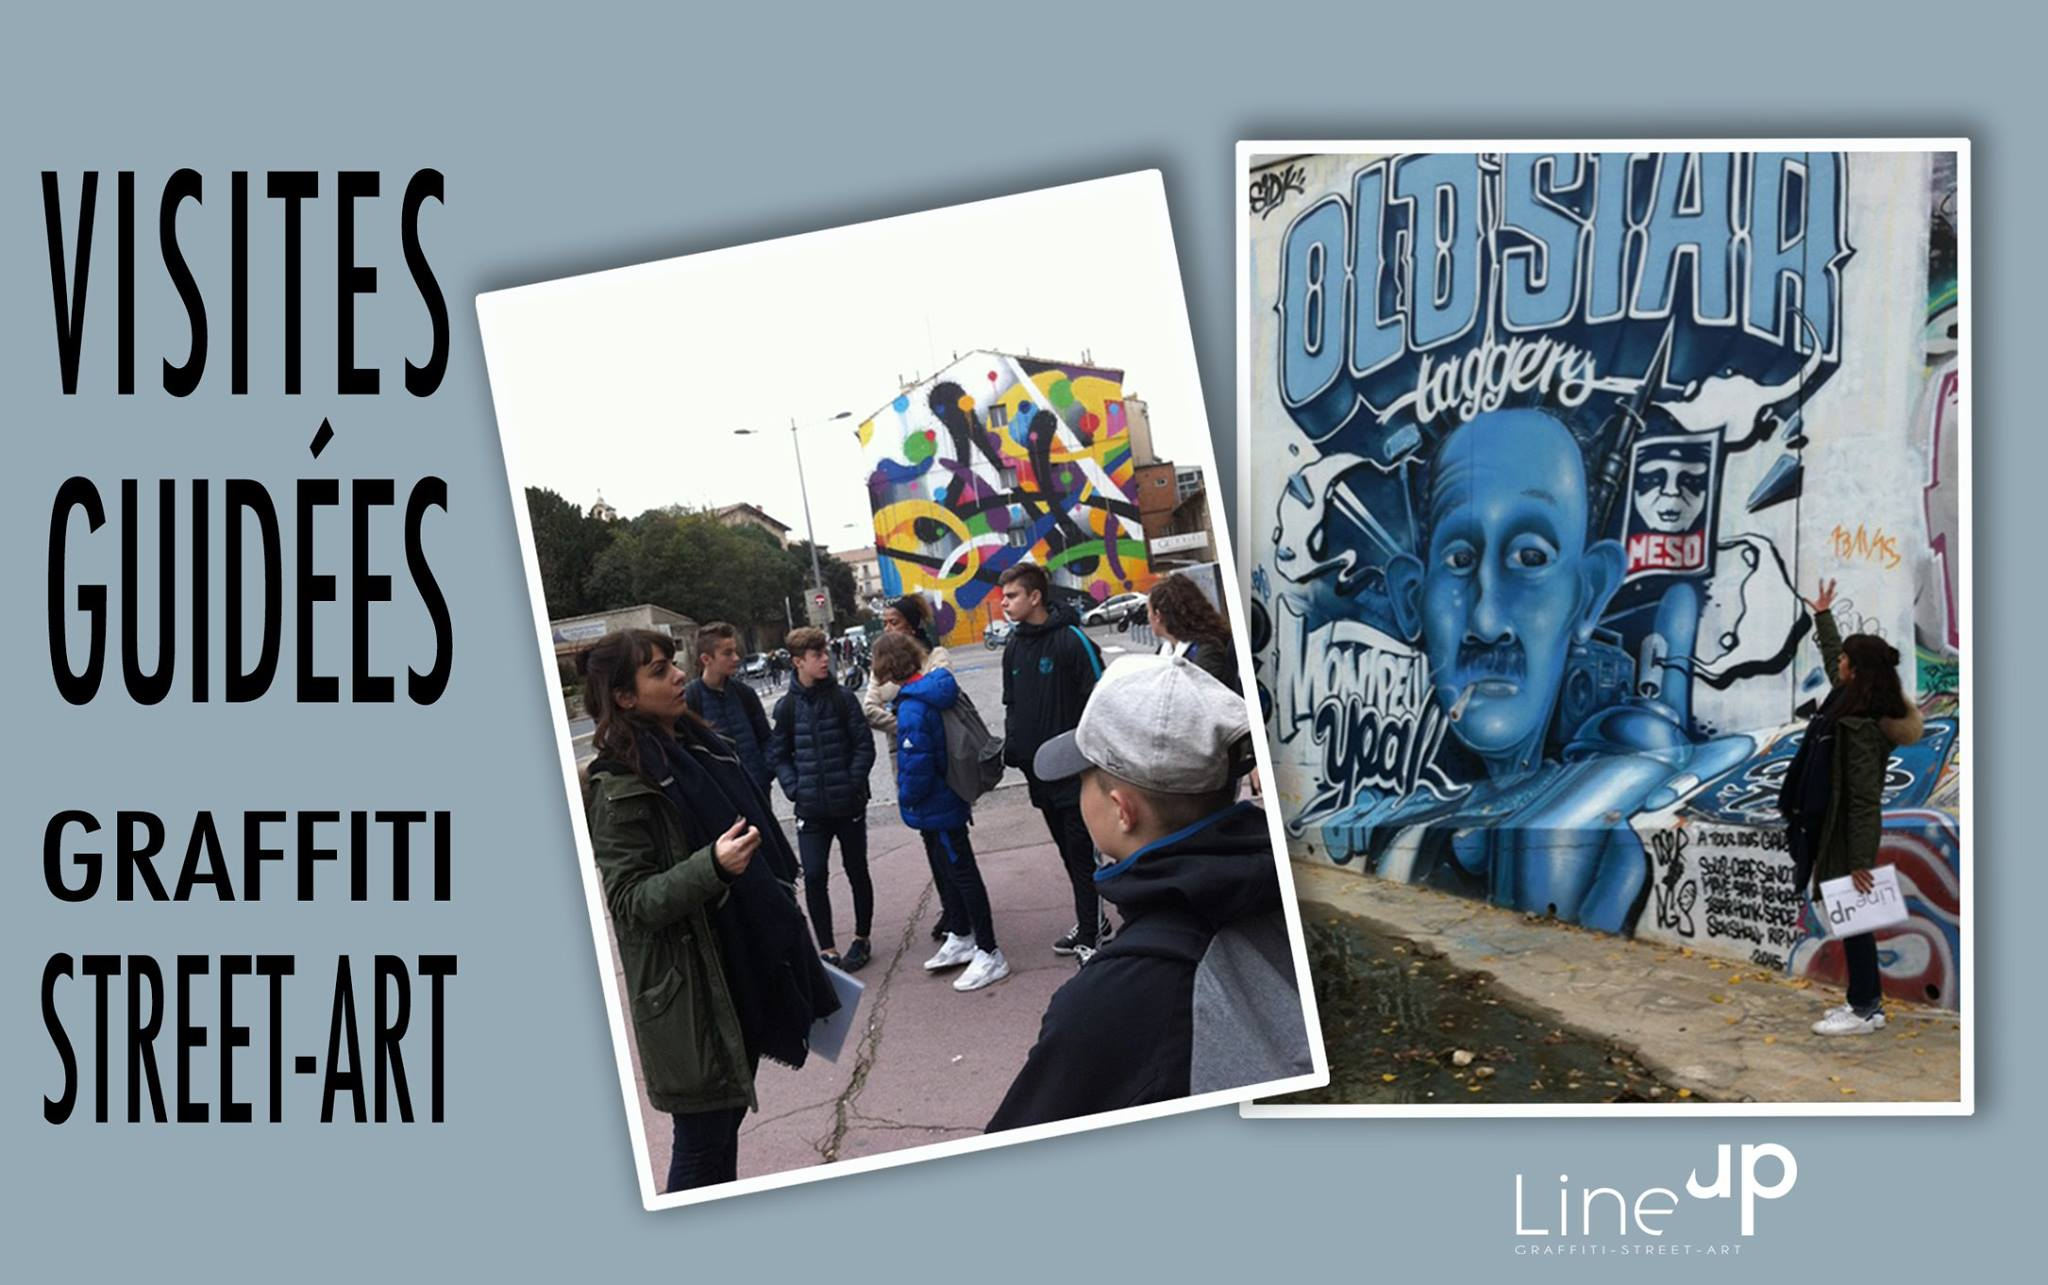 Visites guidées Graffiti – street-art par Line Up